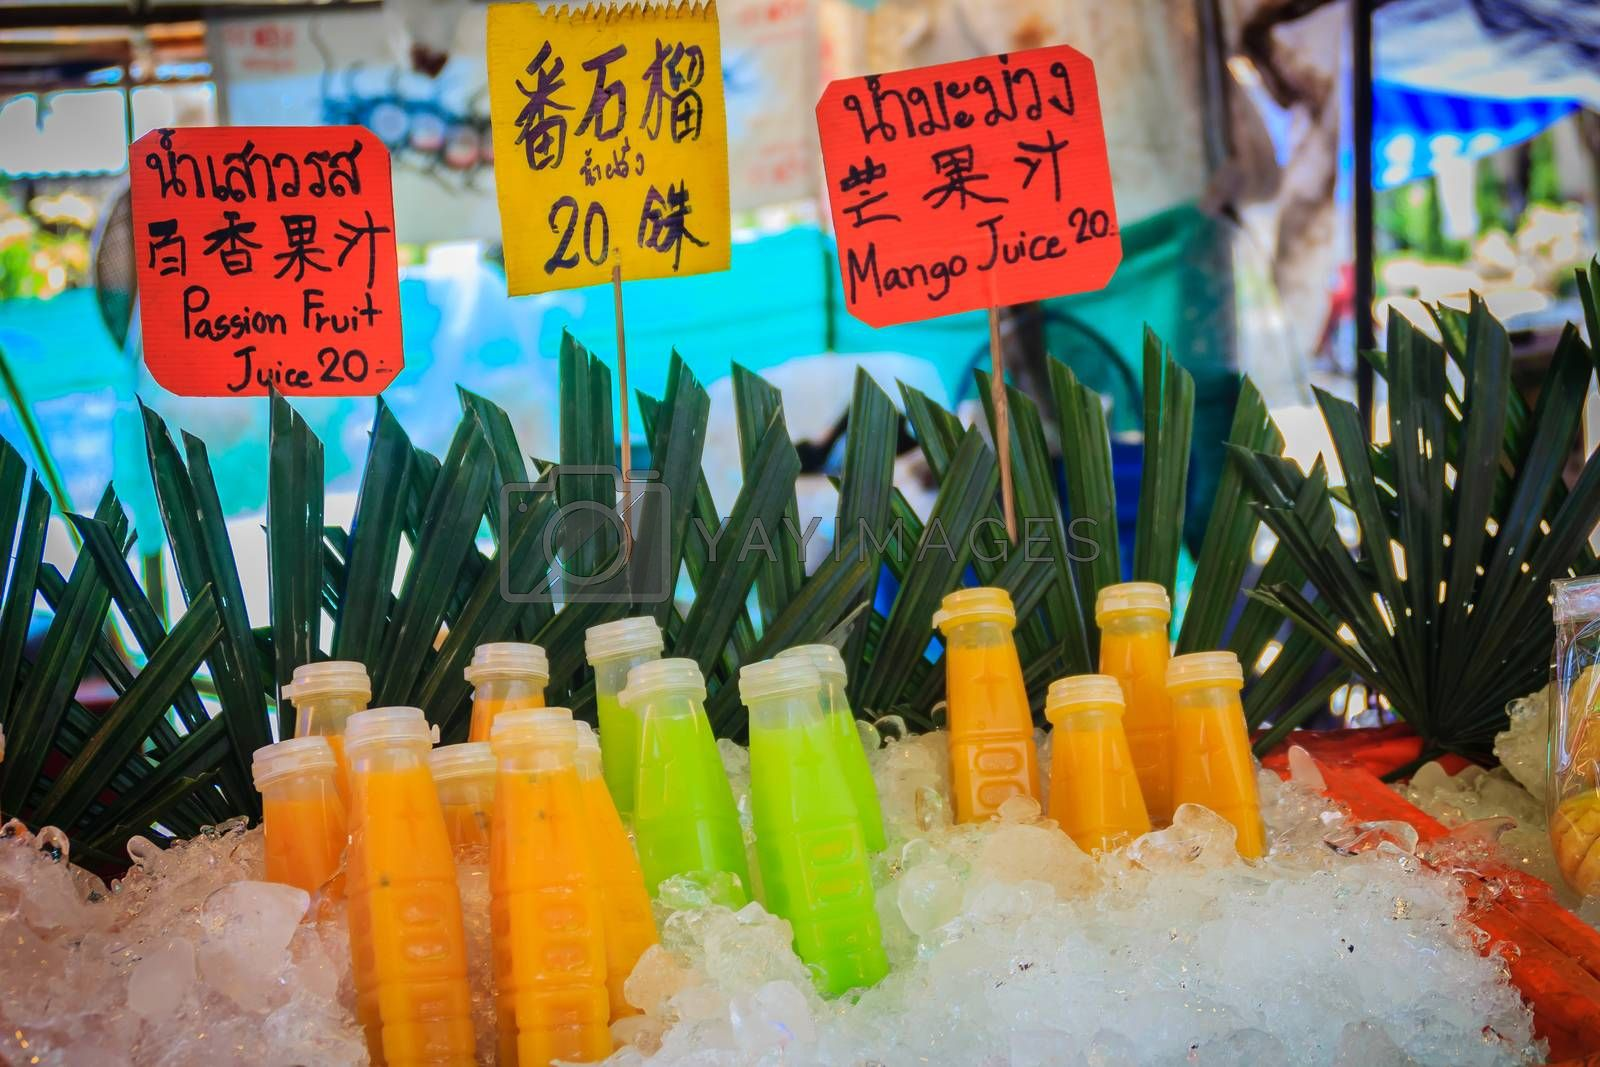 Bottled of passion fruit, guava, and mango juices on ice box were displayed for sale as fresh fruits juice at street food stall with price tag.